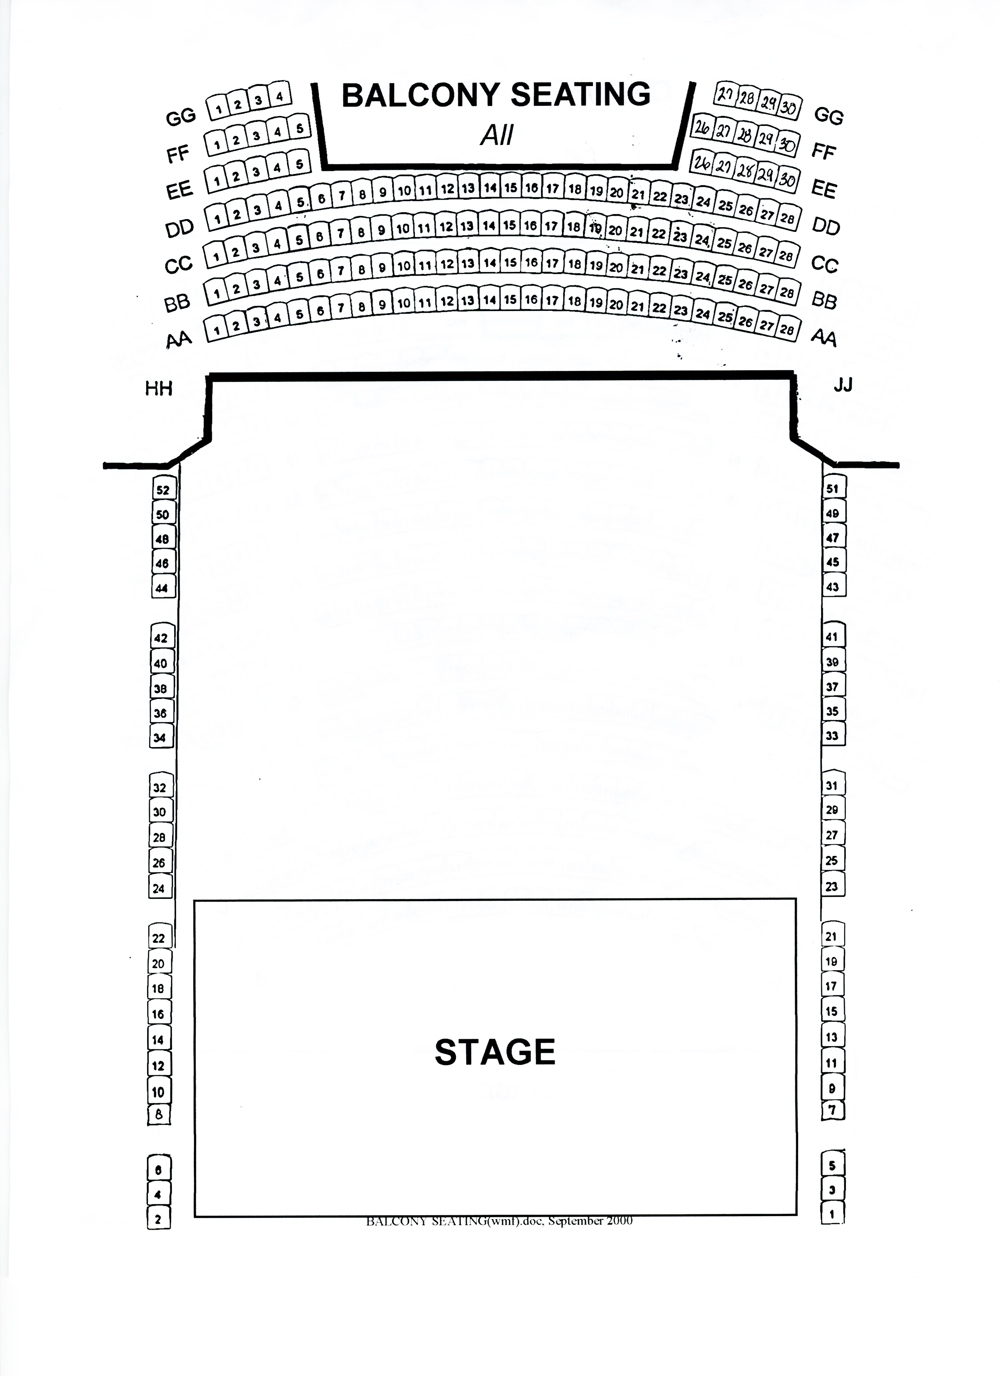 PorterCenter_SeatingChart-balcony